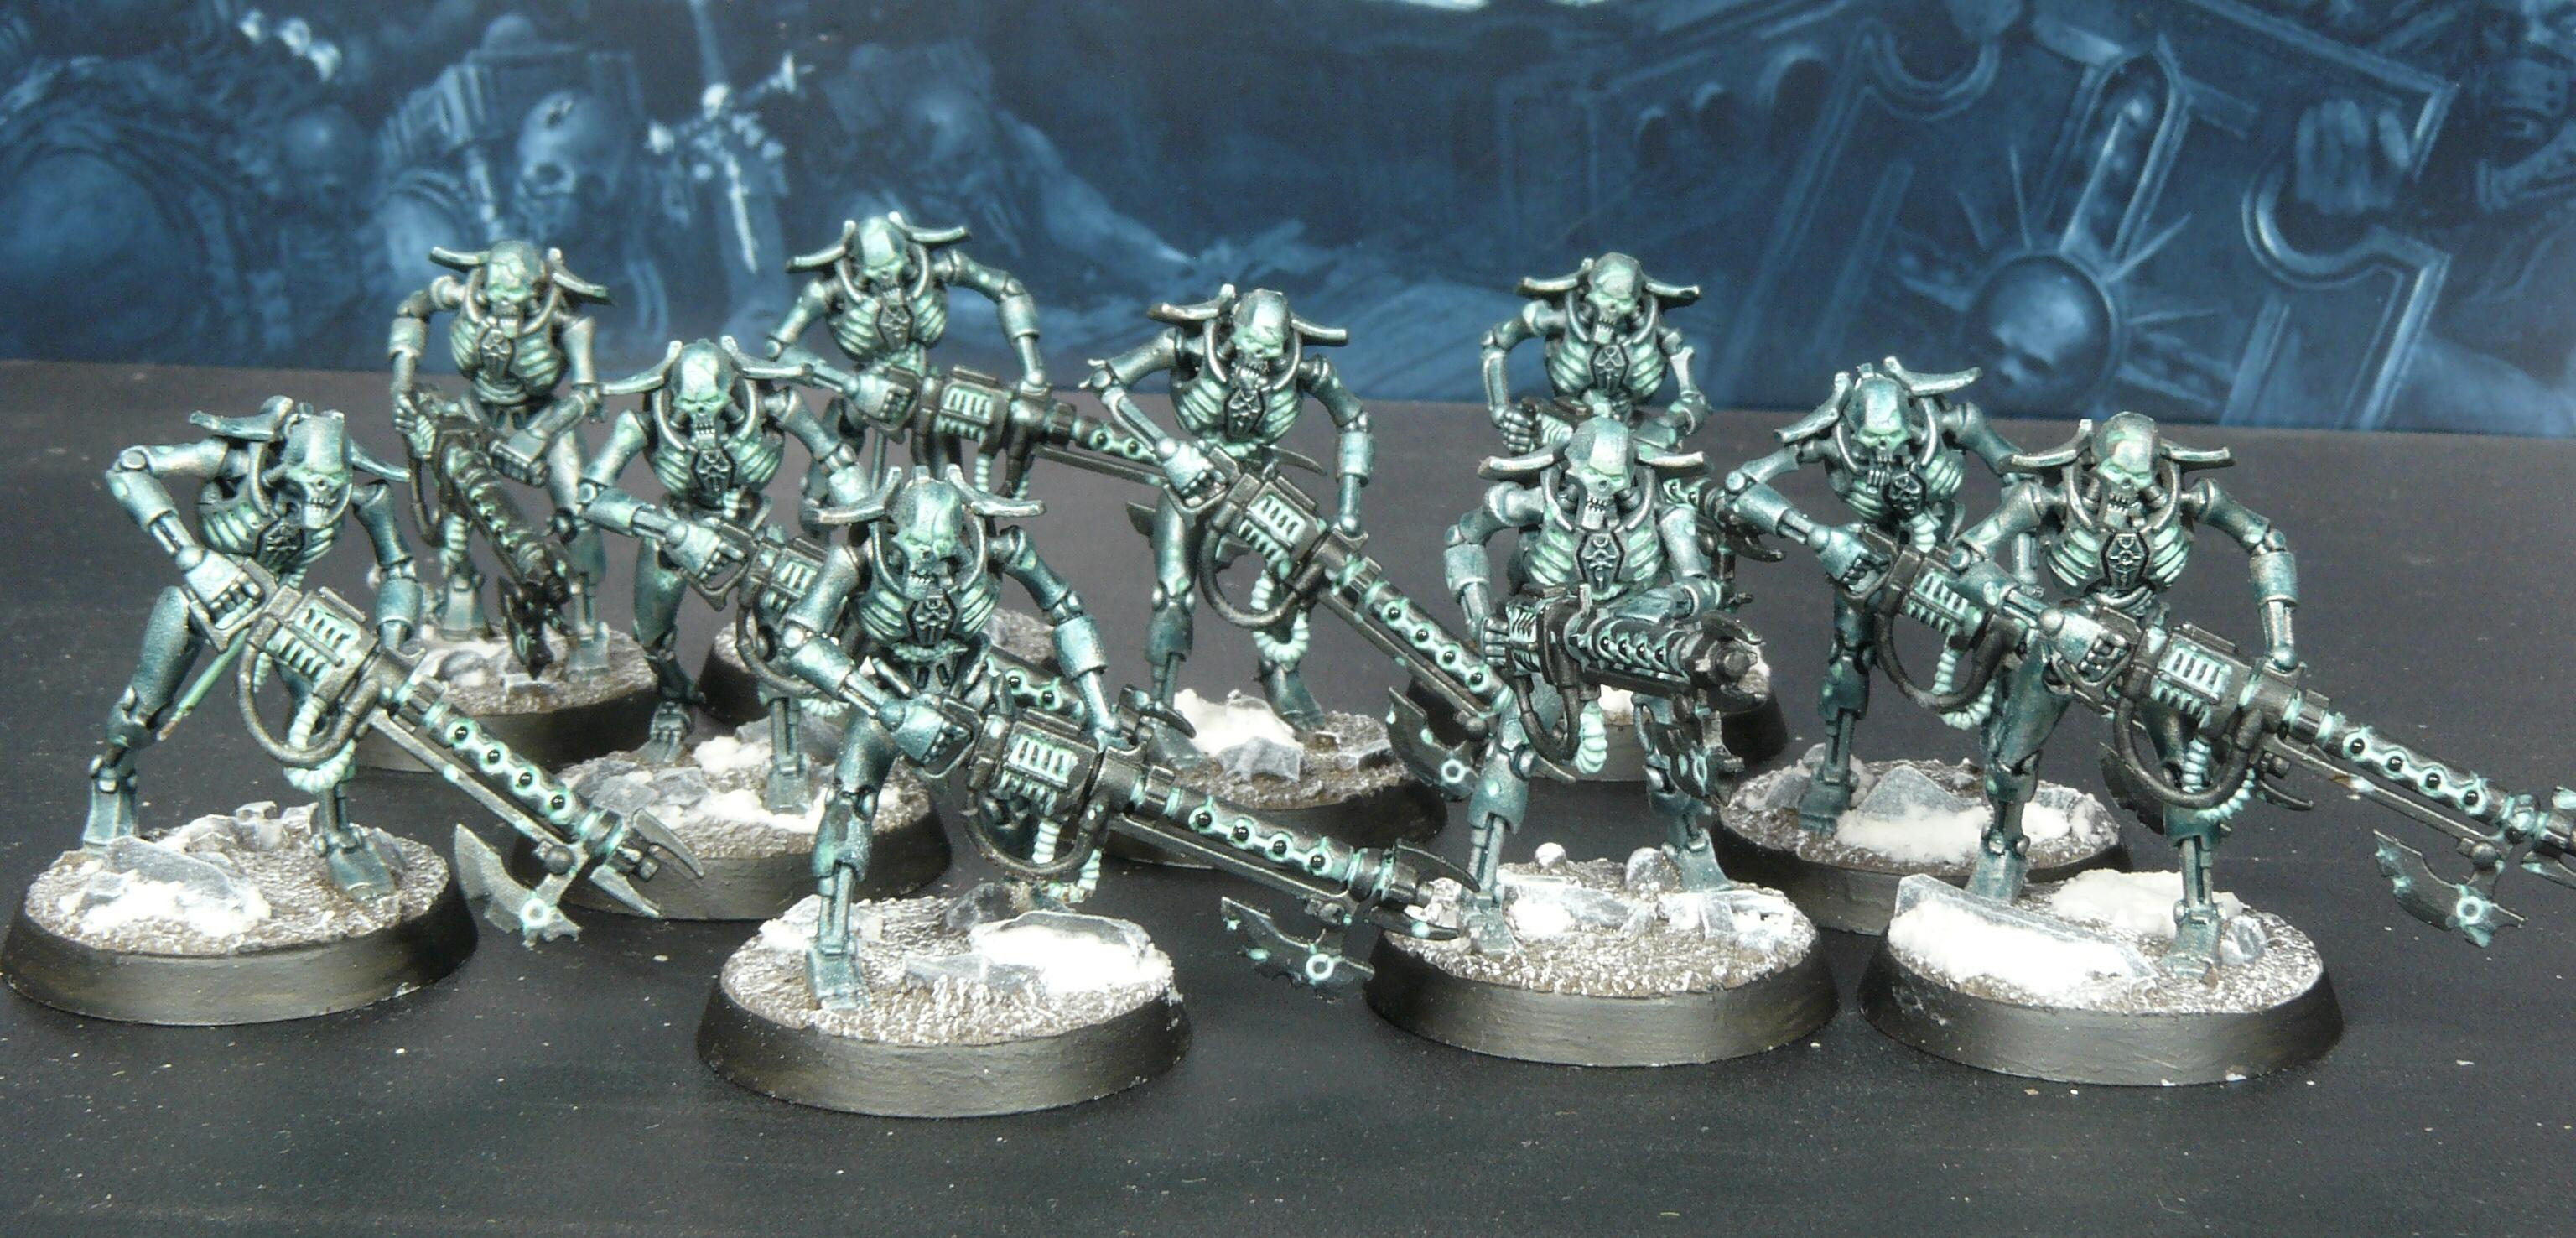 Indomitus, Necron Warriors, Necrons, Warhammer 40,000